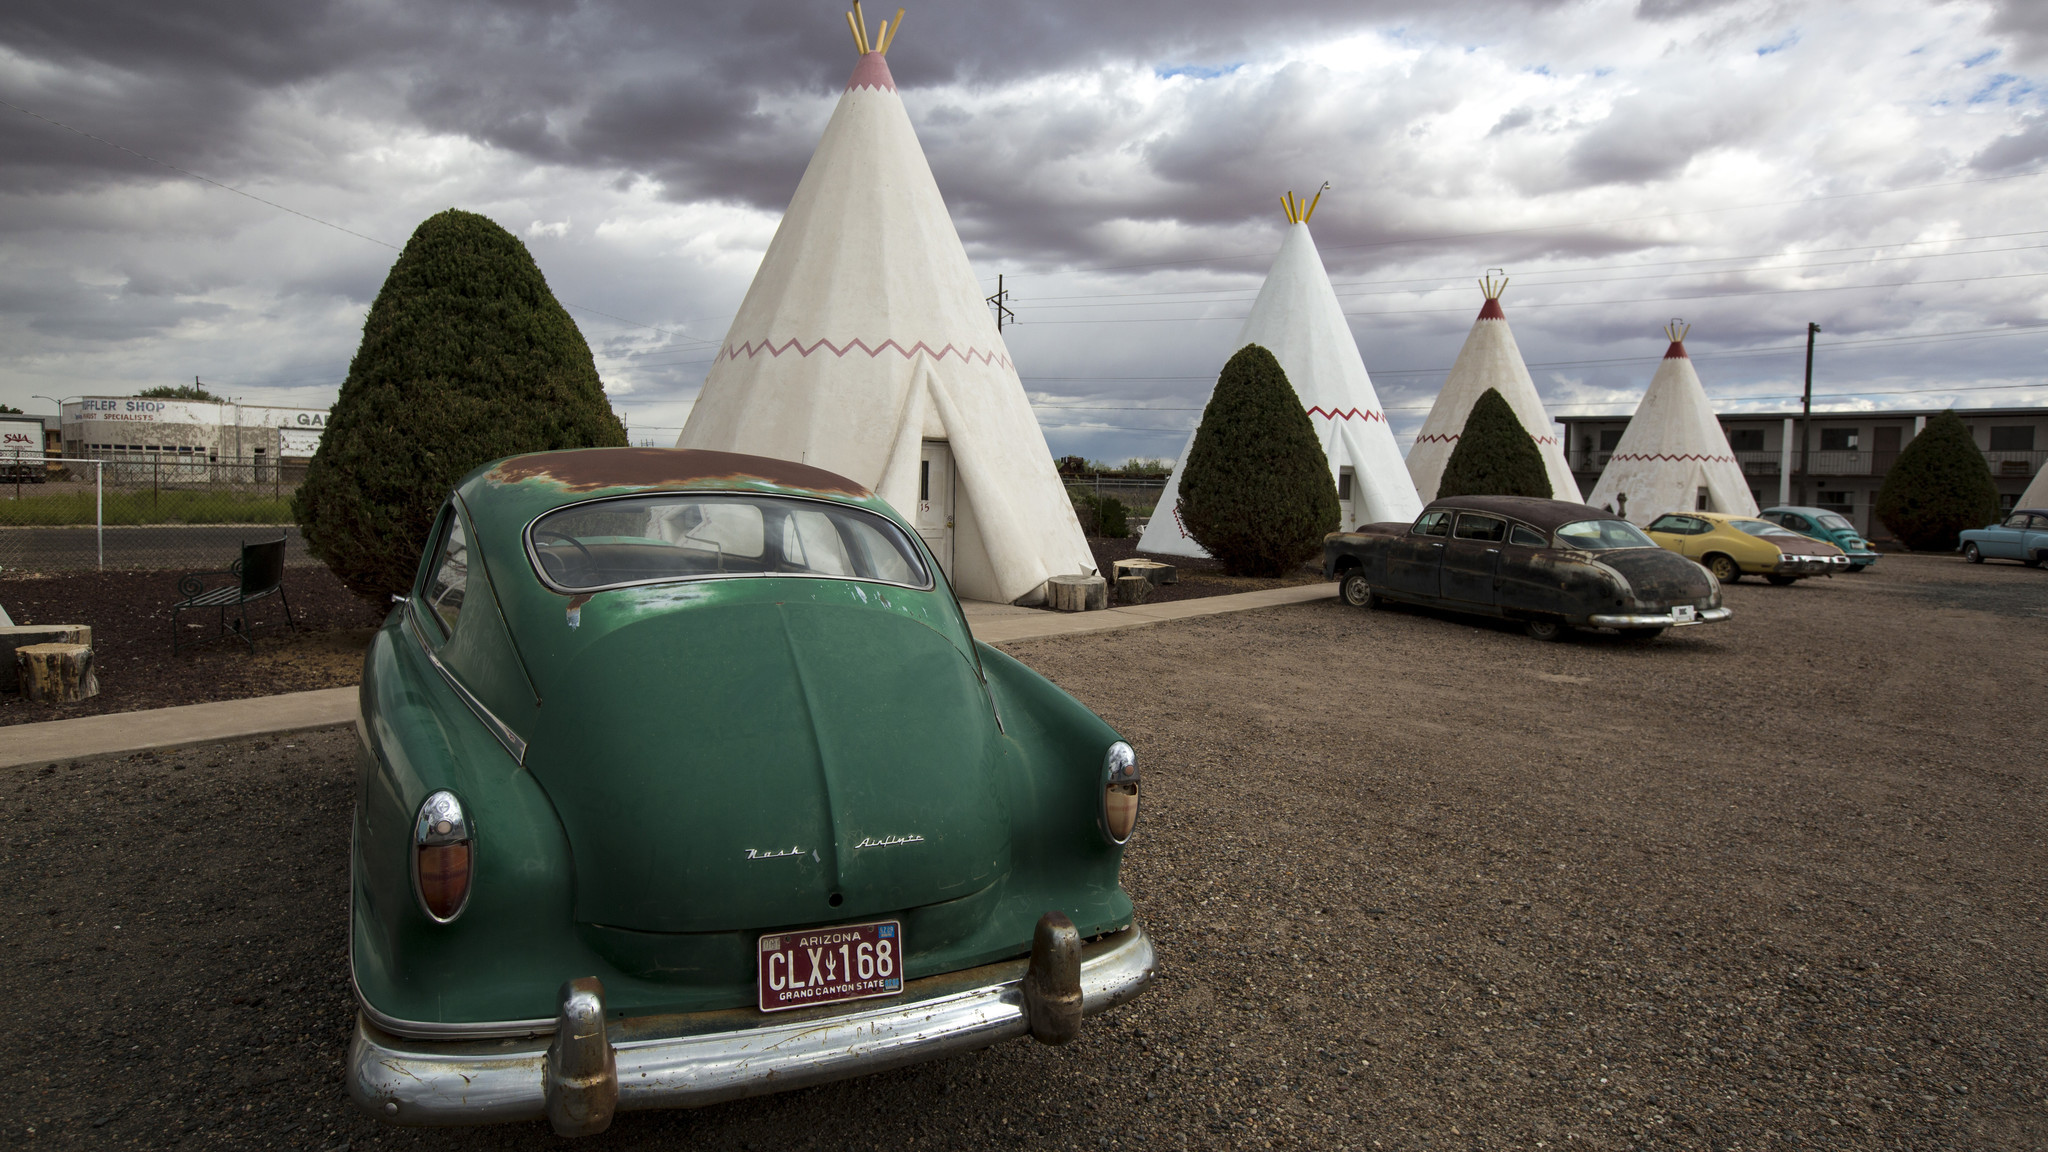 The Wigwam Motel on the iconic Route 66 in Holbrook, Arizona.